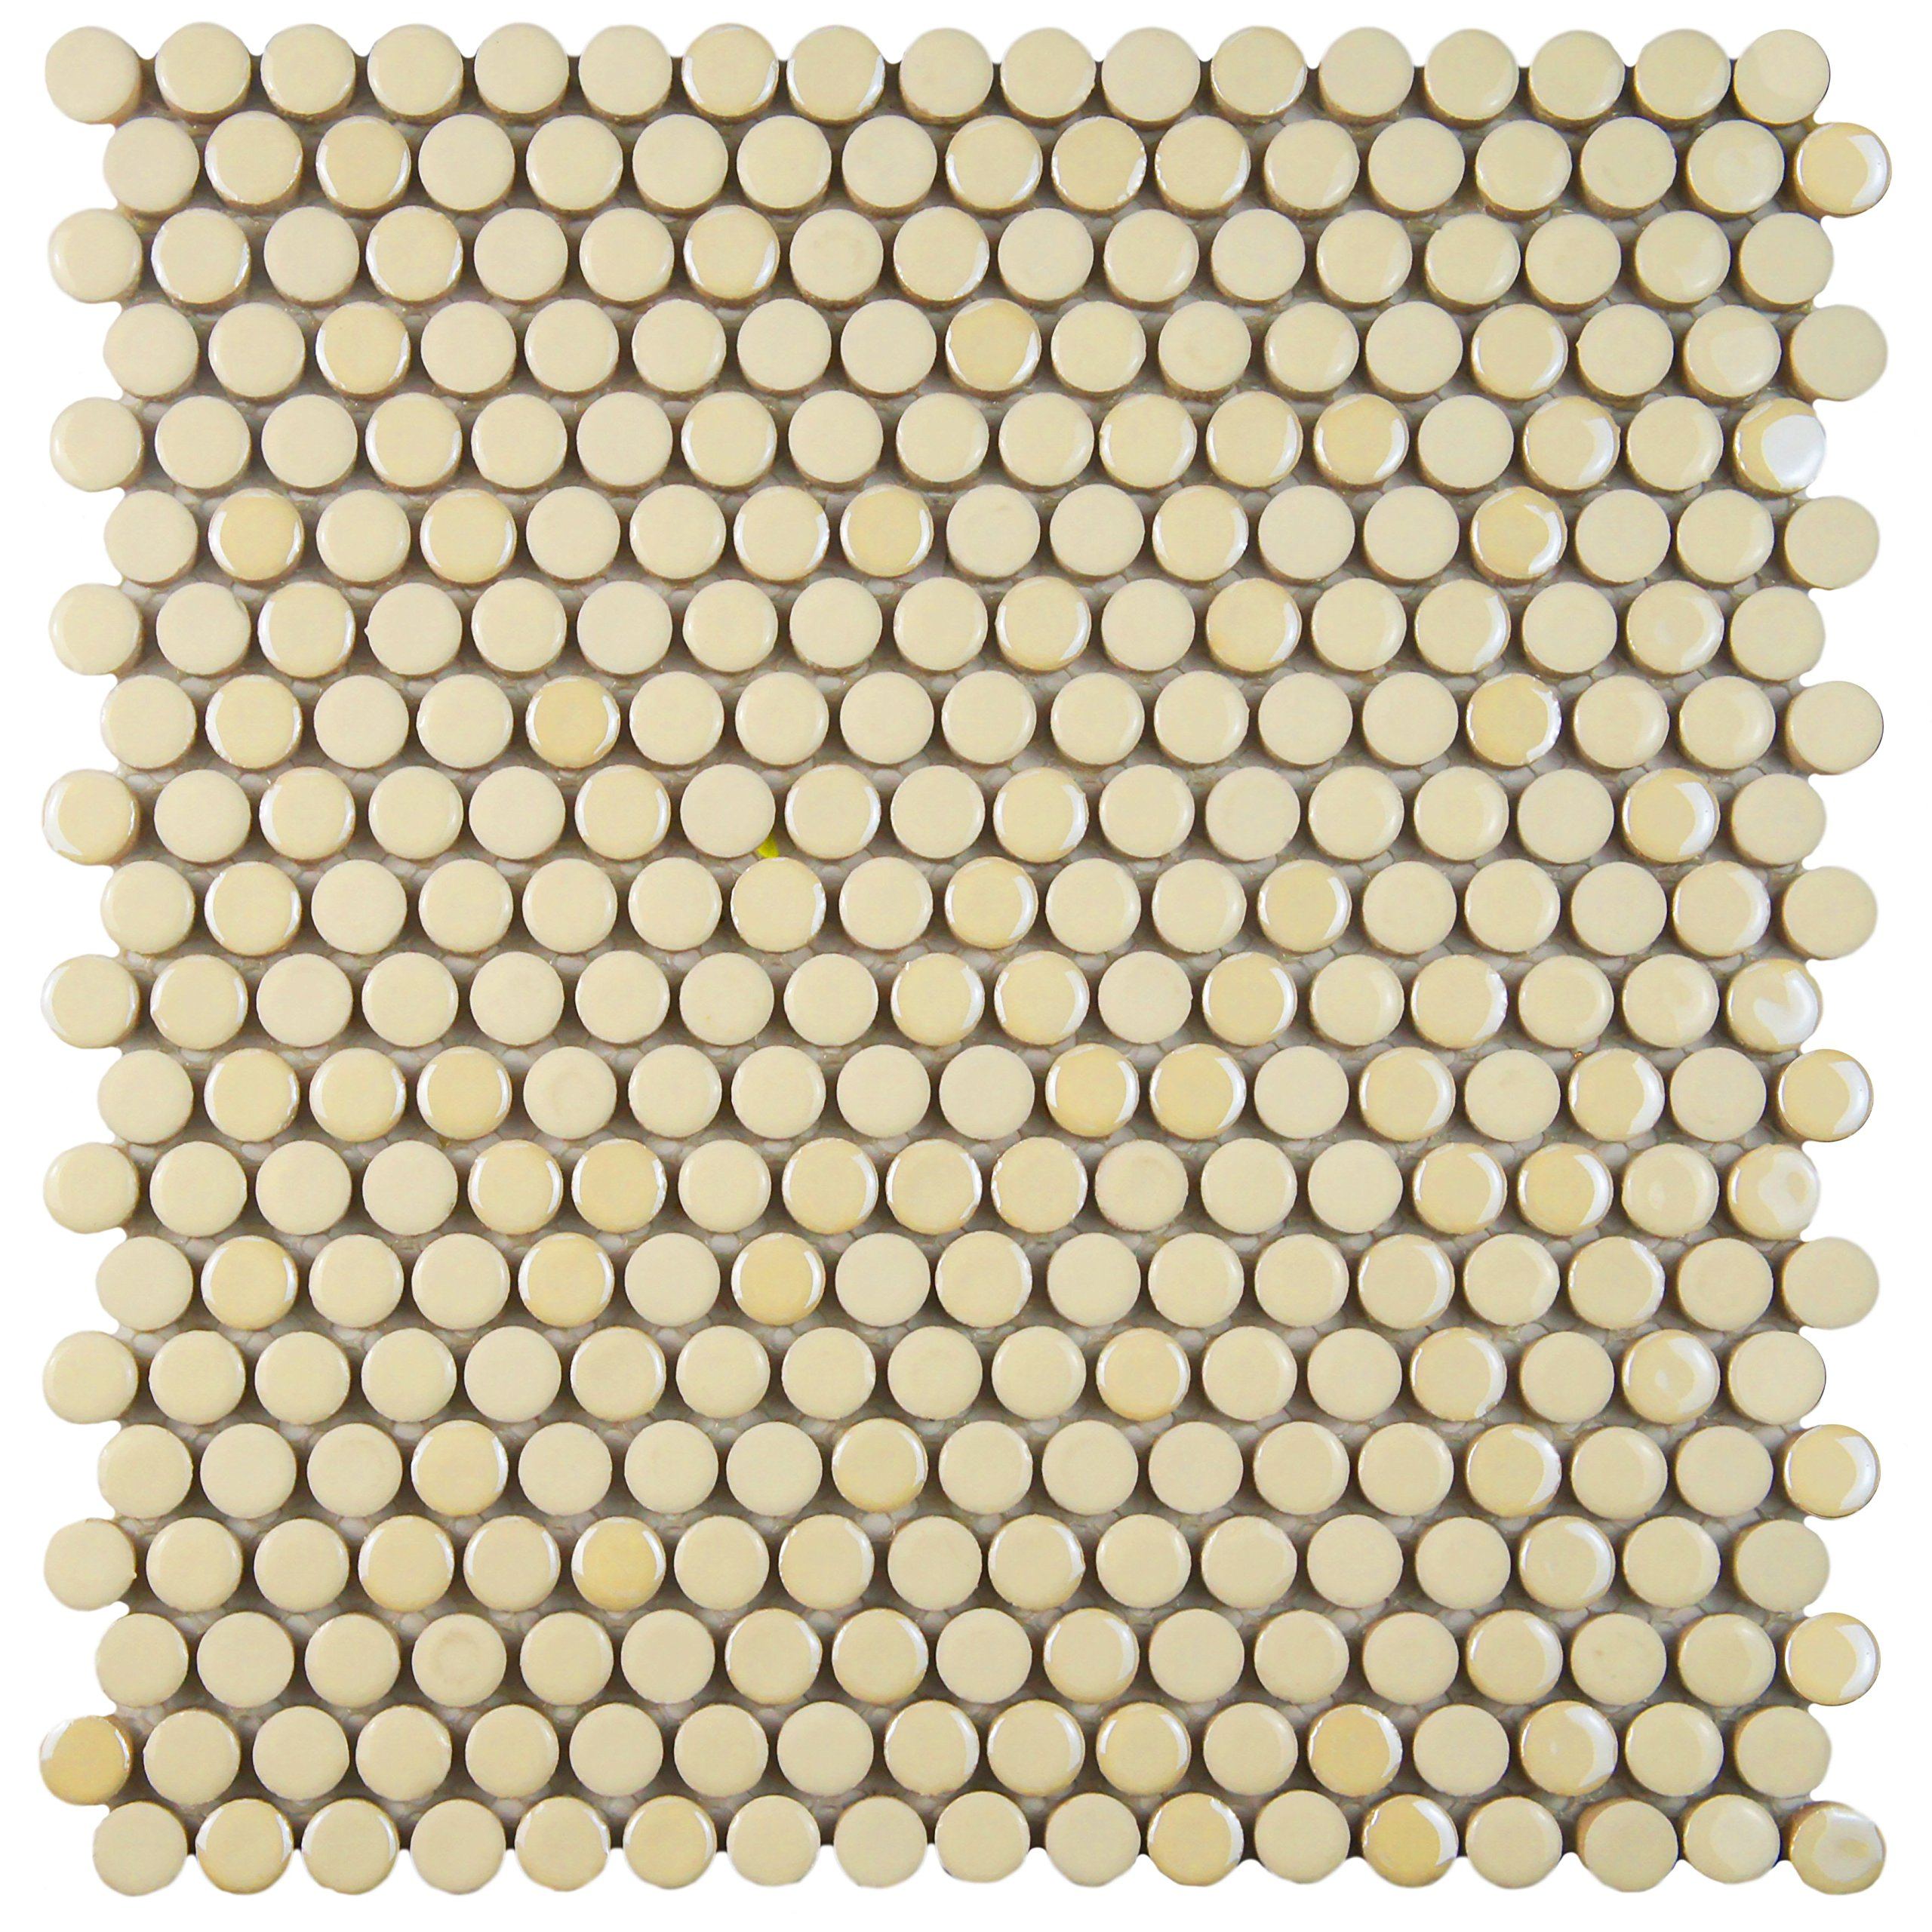 SomerTile WSHGPRAL Ursa Penny Round Porcelain Floor and Wall Tile, 11.25'' x 11.75'', Almond Beige